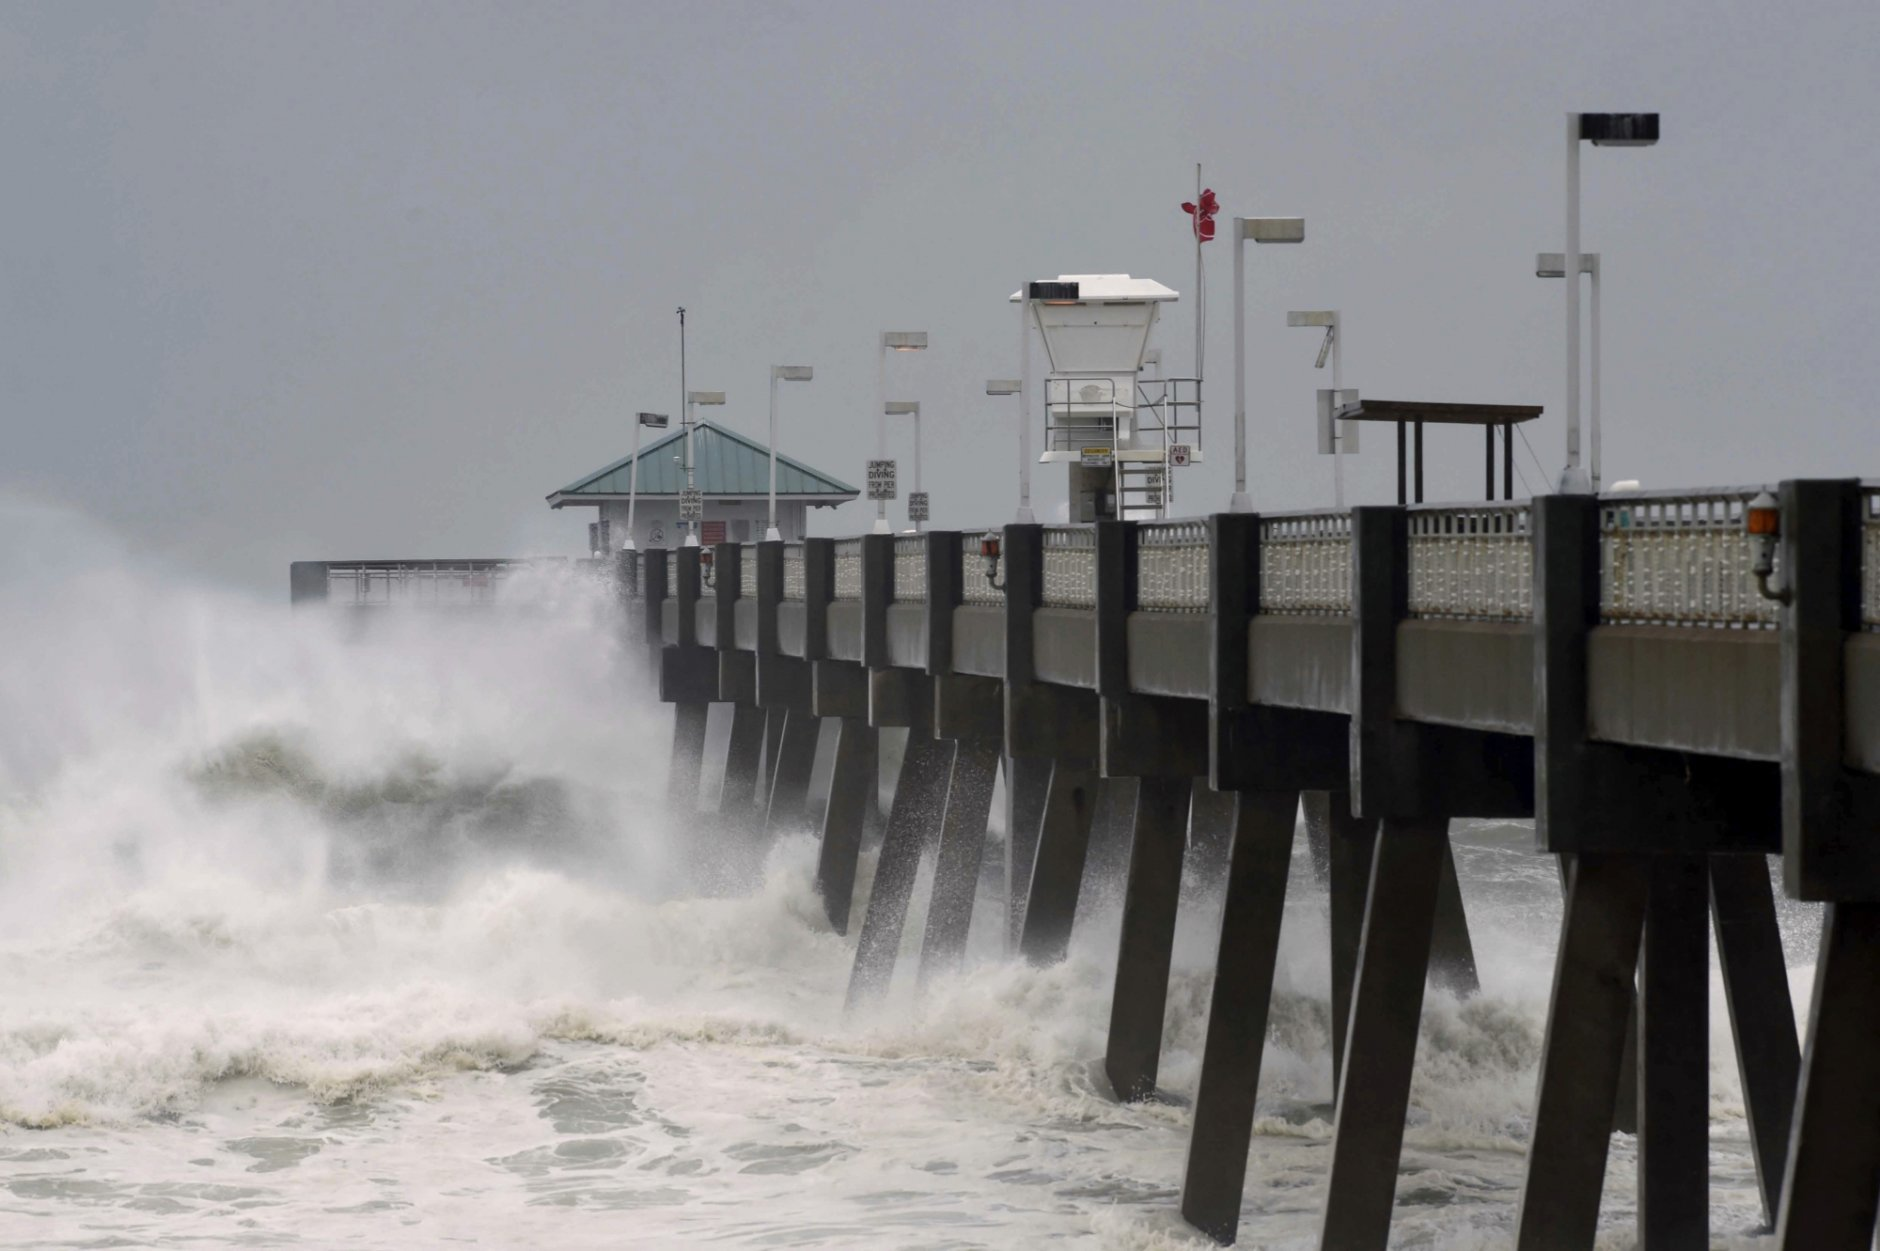 Heavy surf from the approaching Hurricane Michael pounds the fishing pier on Okaloosa Island in Fort Walton Beach, Fla., on Wednesday, Oct. 10, 2018. (Devon Ravine/Northwest Florida Daily News via AP)